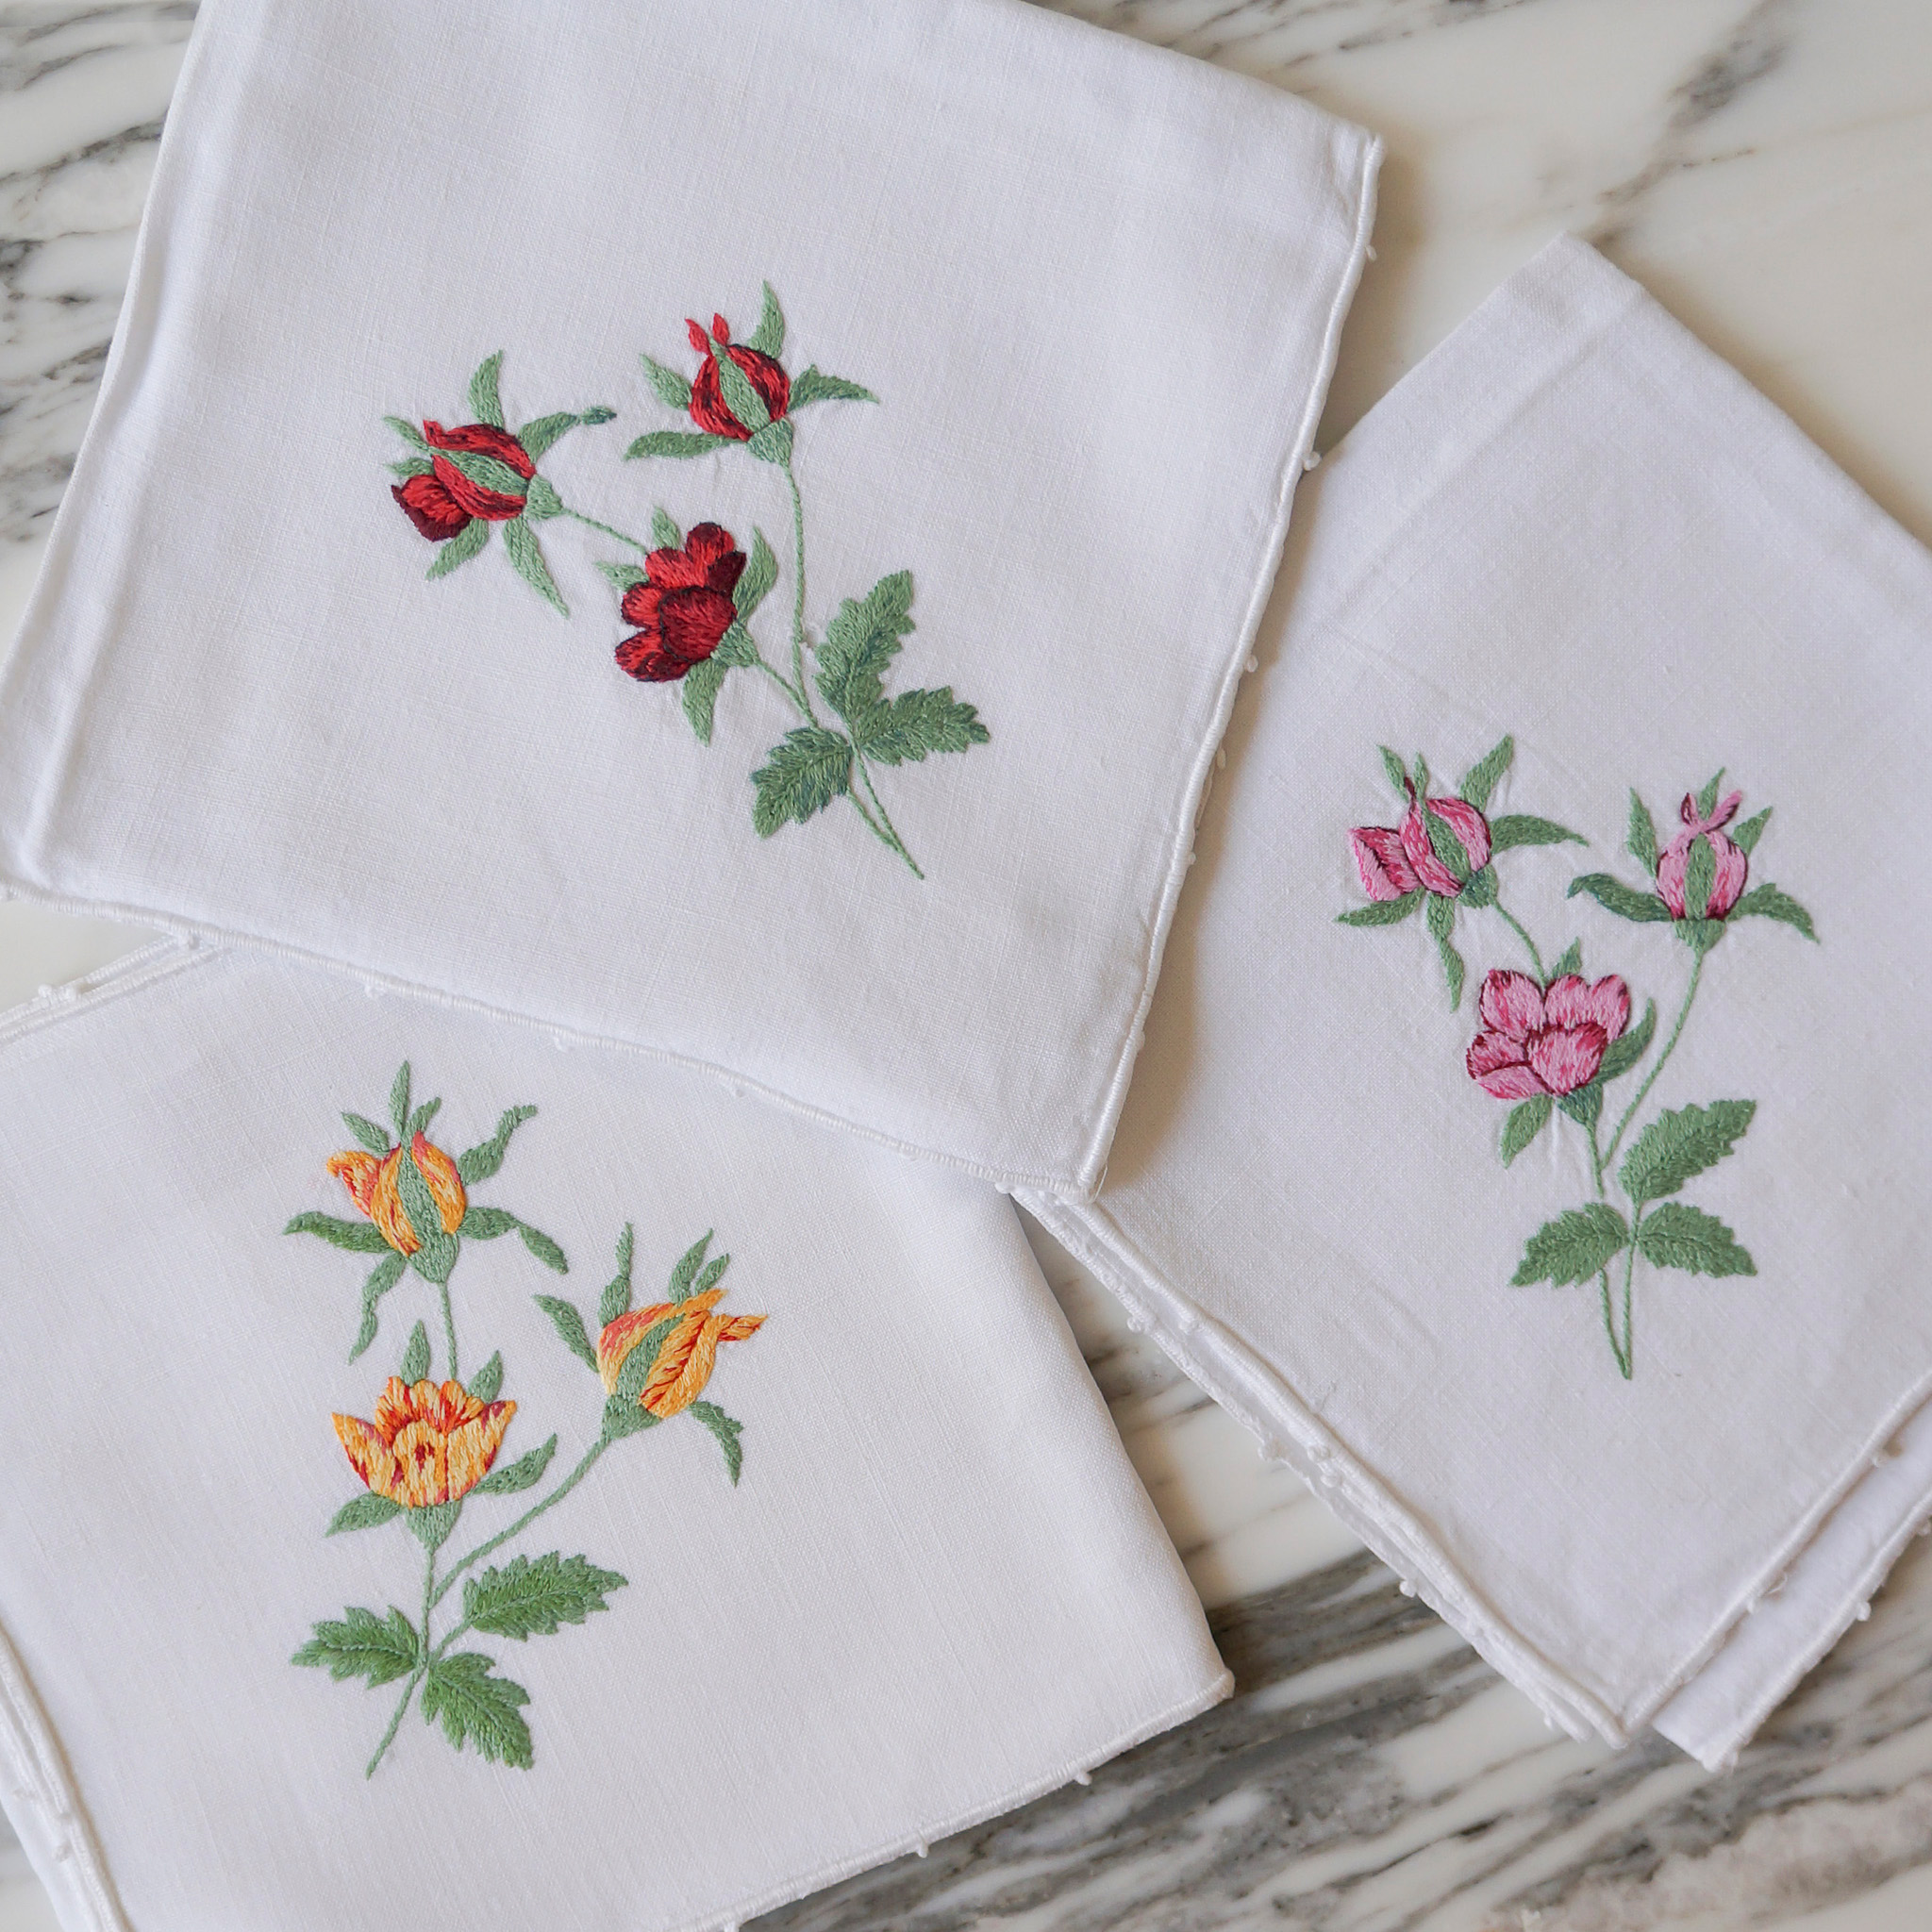 french hand-embroidered floral napkins